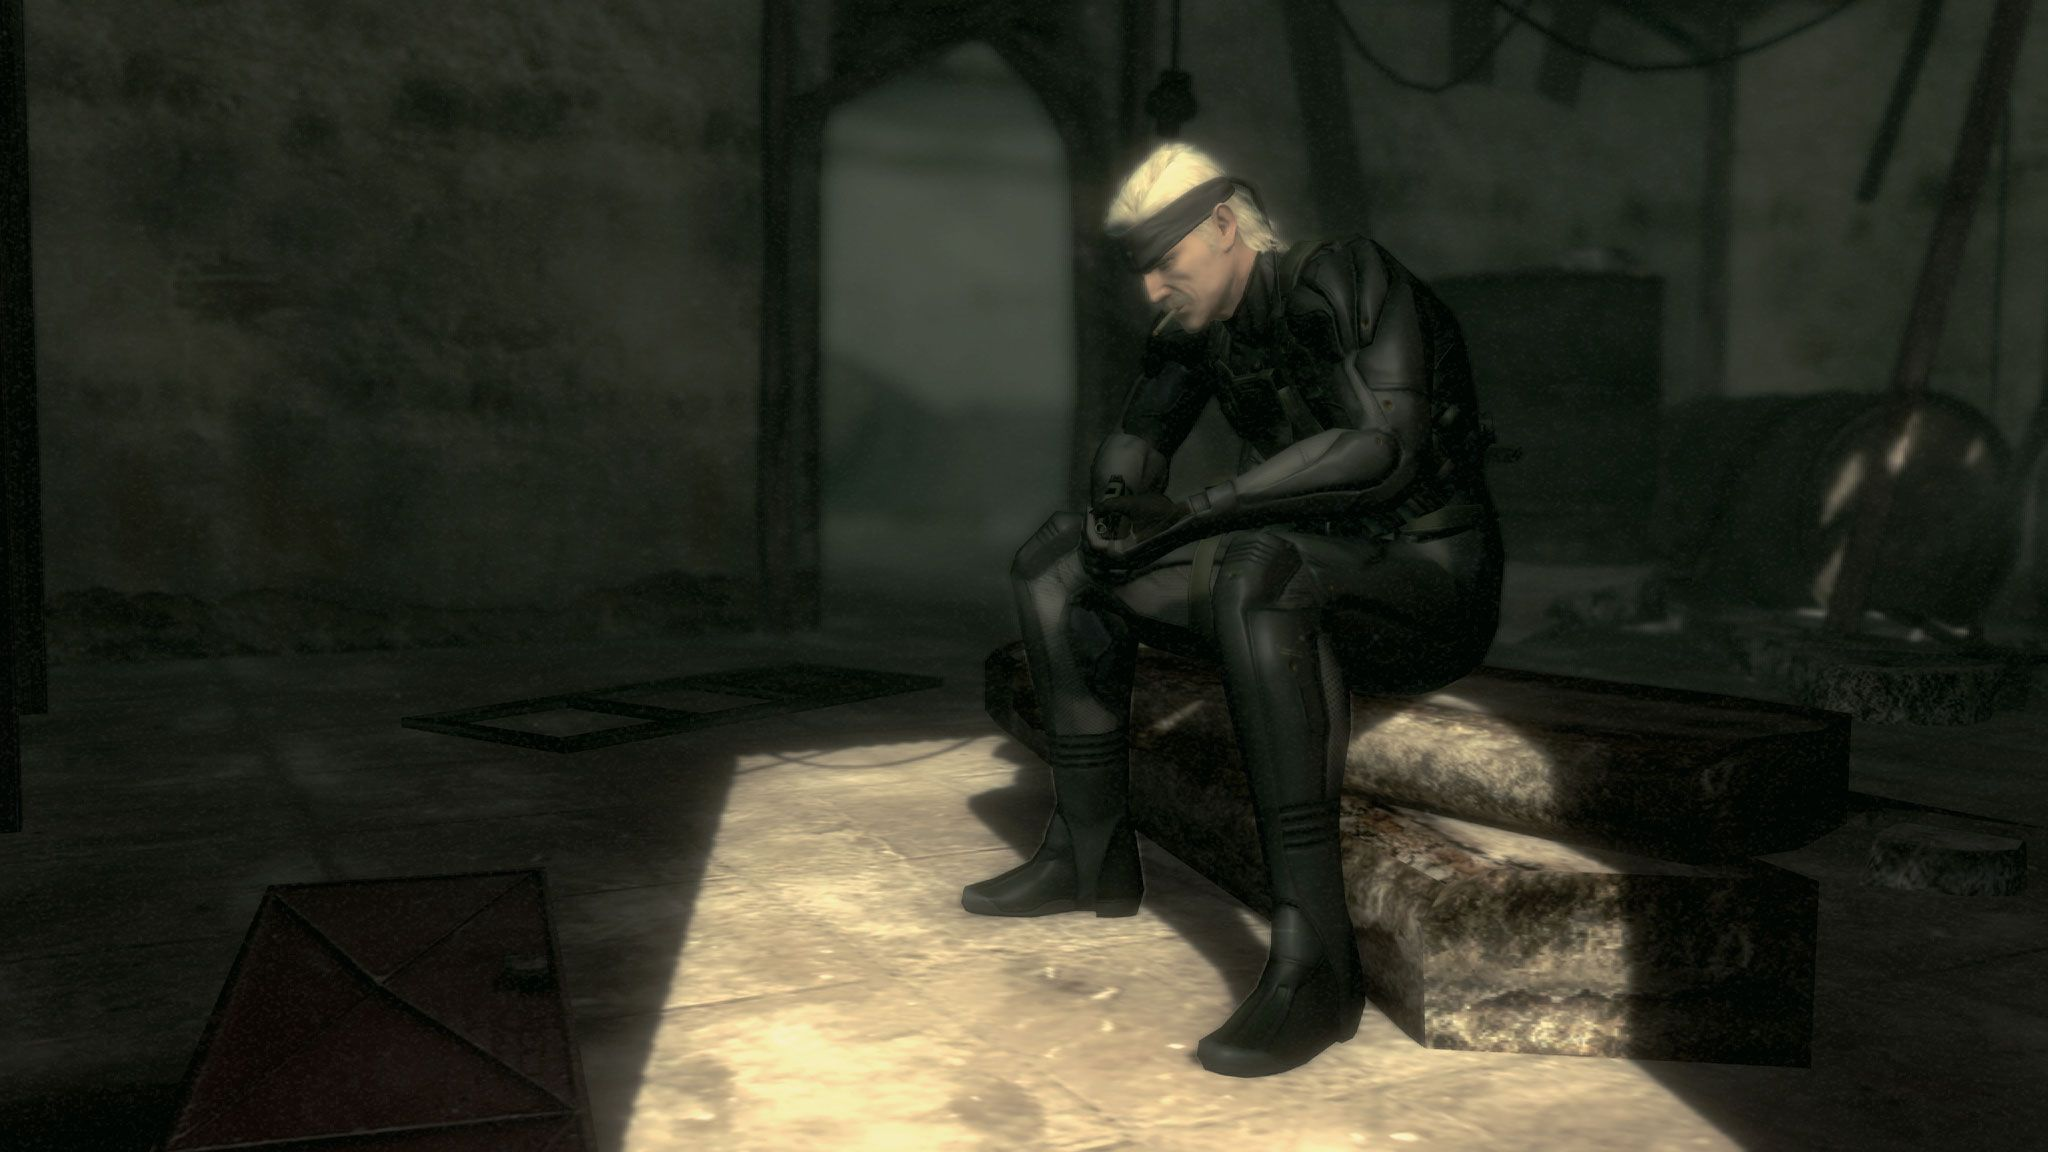 metal_gear_solid_4_image_screenshot_ps3.jpg